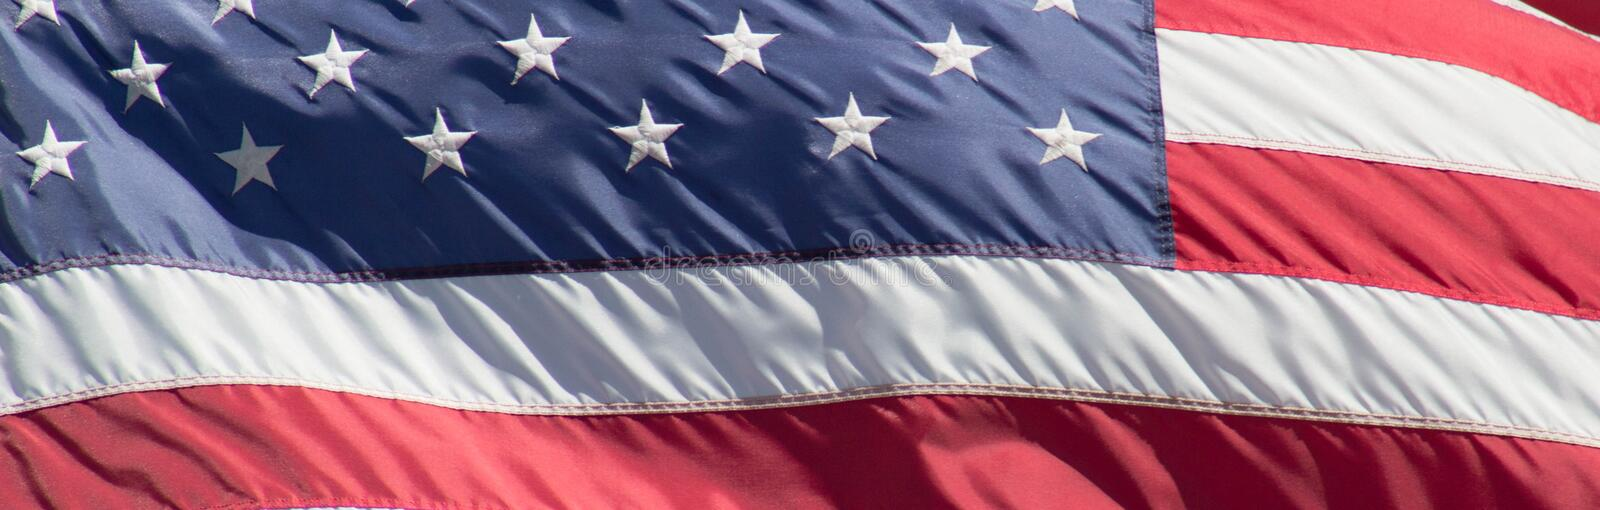 Download Stars and Stripes stock photo. Image of satin, concept - 33577852